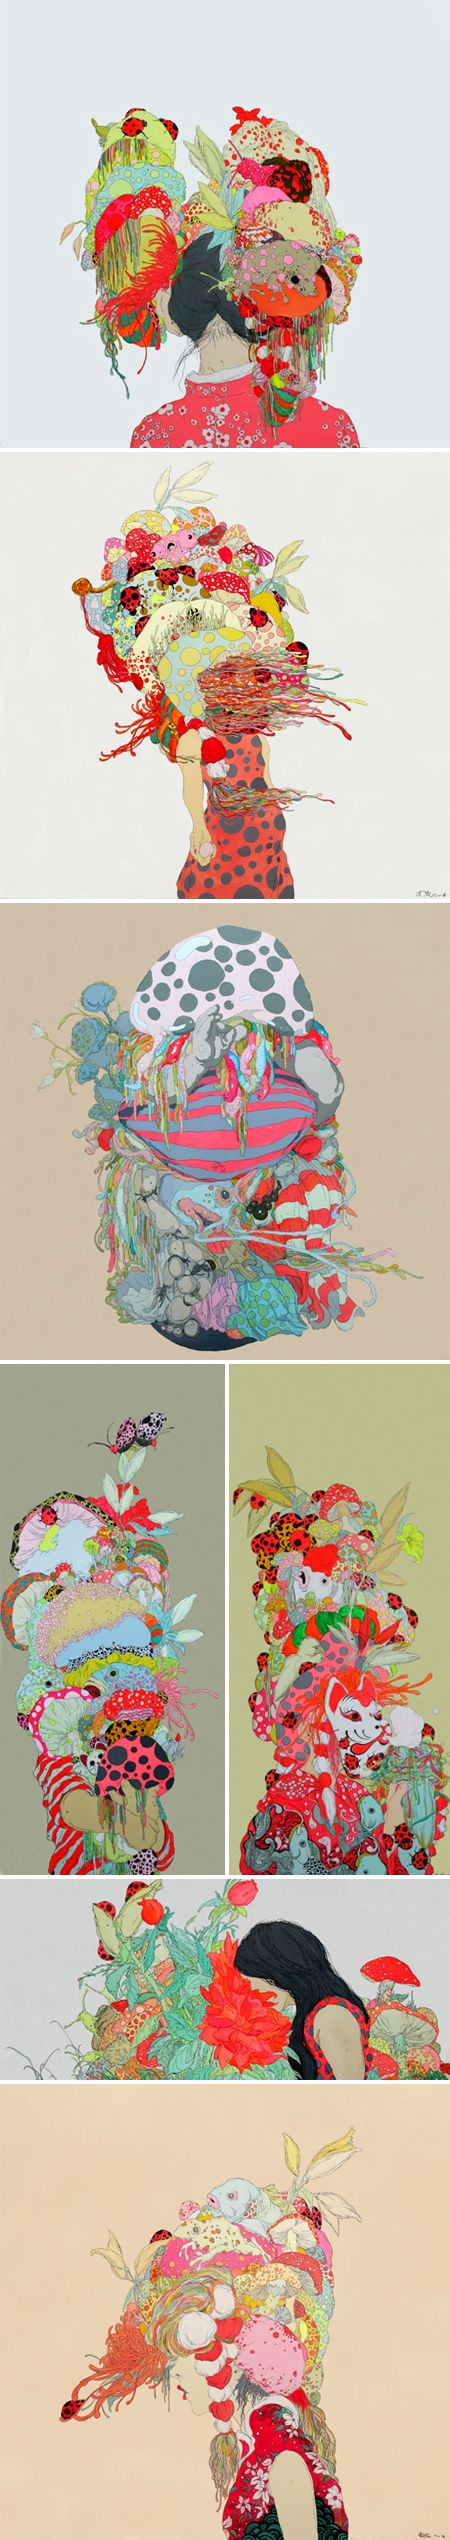 "Artist Zhou Fan - ""my paintings are based on dreams that I had as a child of many, many jellyfish floating in the sky, some of which fell to the ground on parachutes and became mushrooms. These dreams had a strong impact on me, and I remember them vividly."""